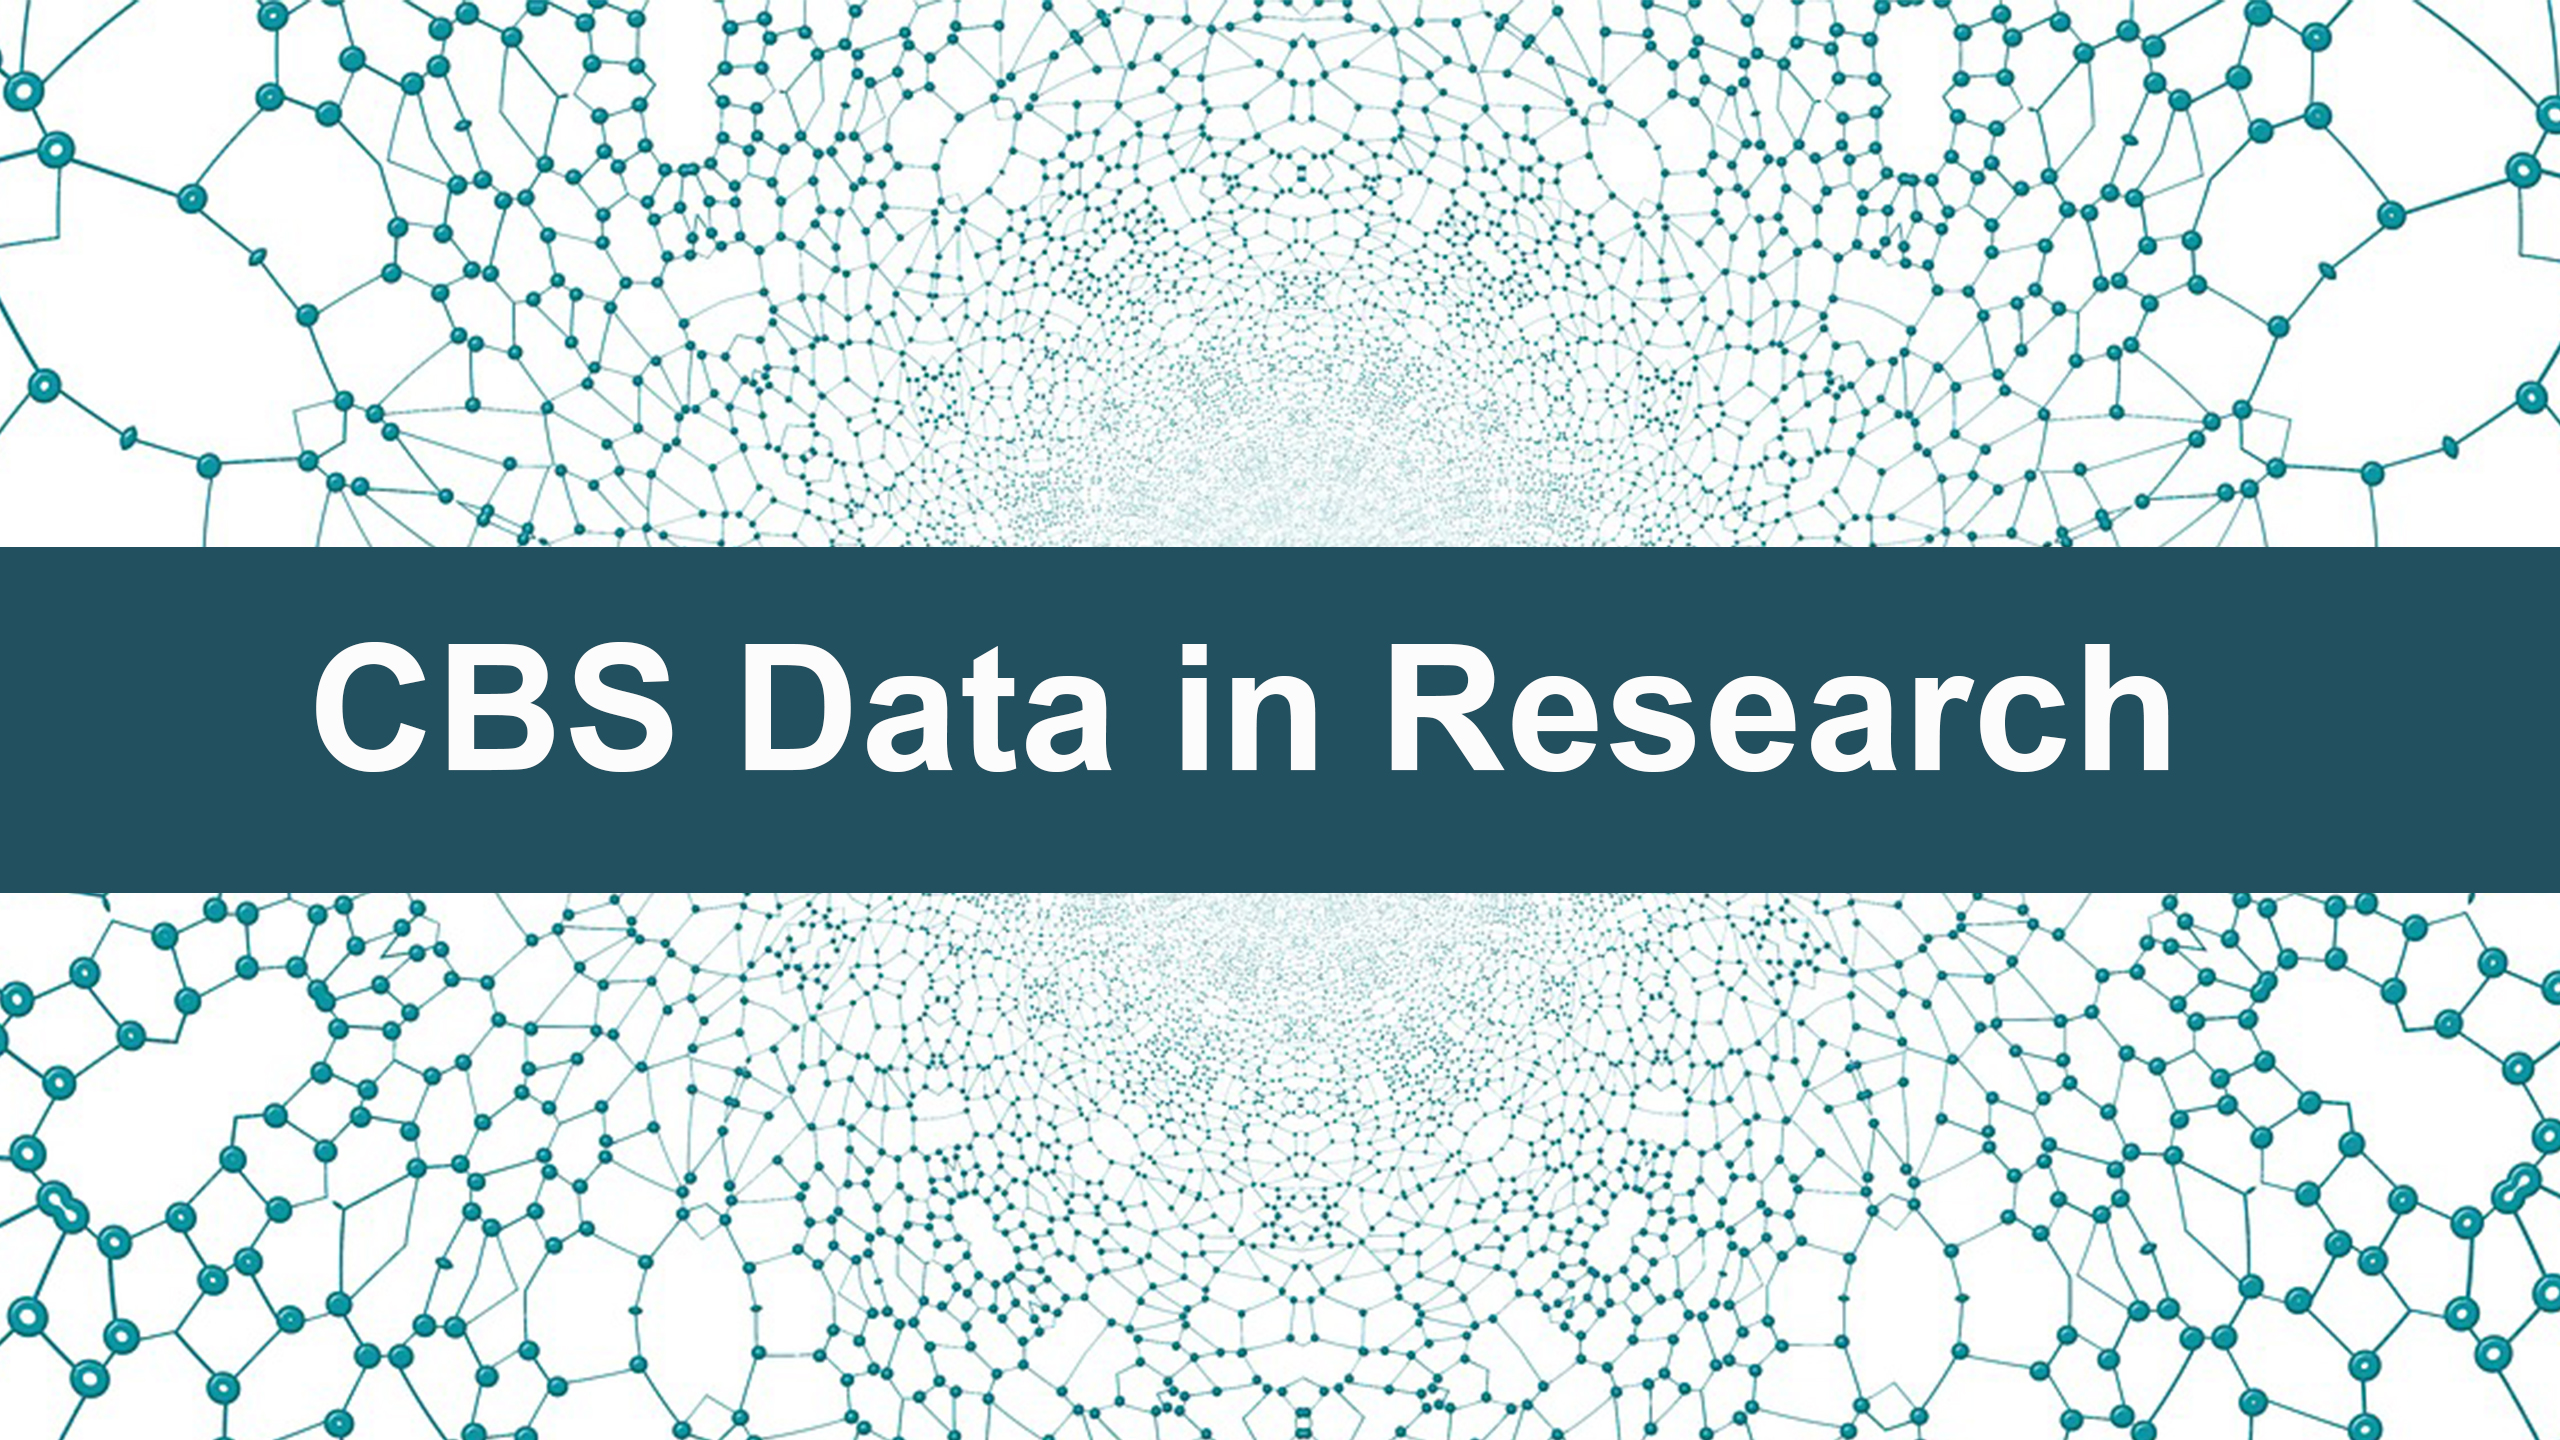 """Design conveying connectivity with text that says """"CBS Data in Research"""""""